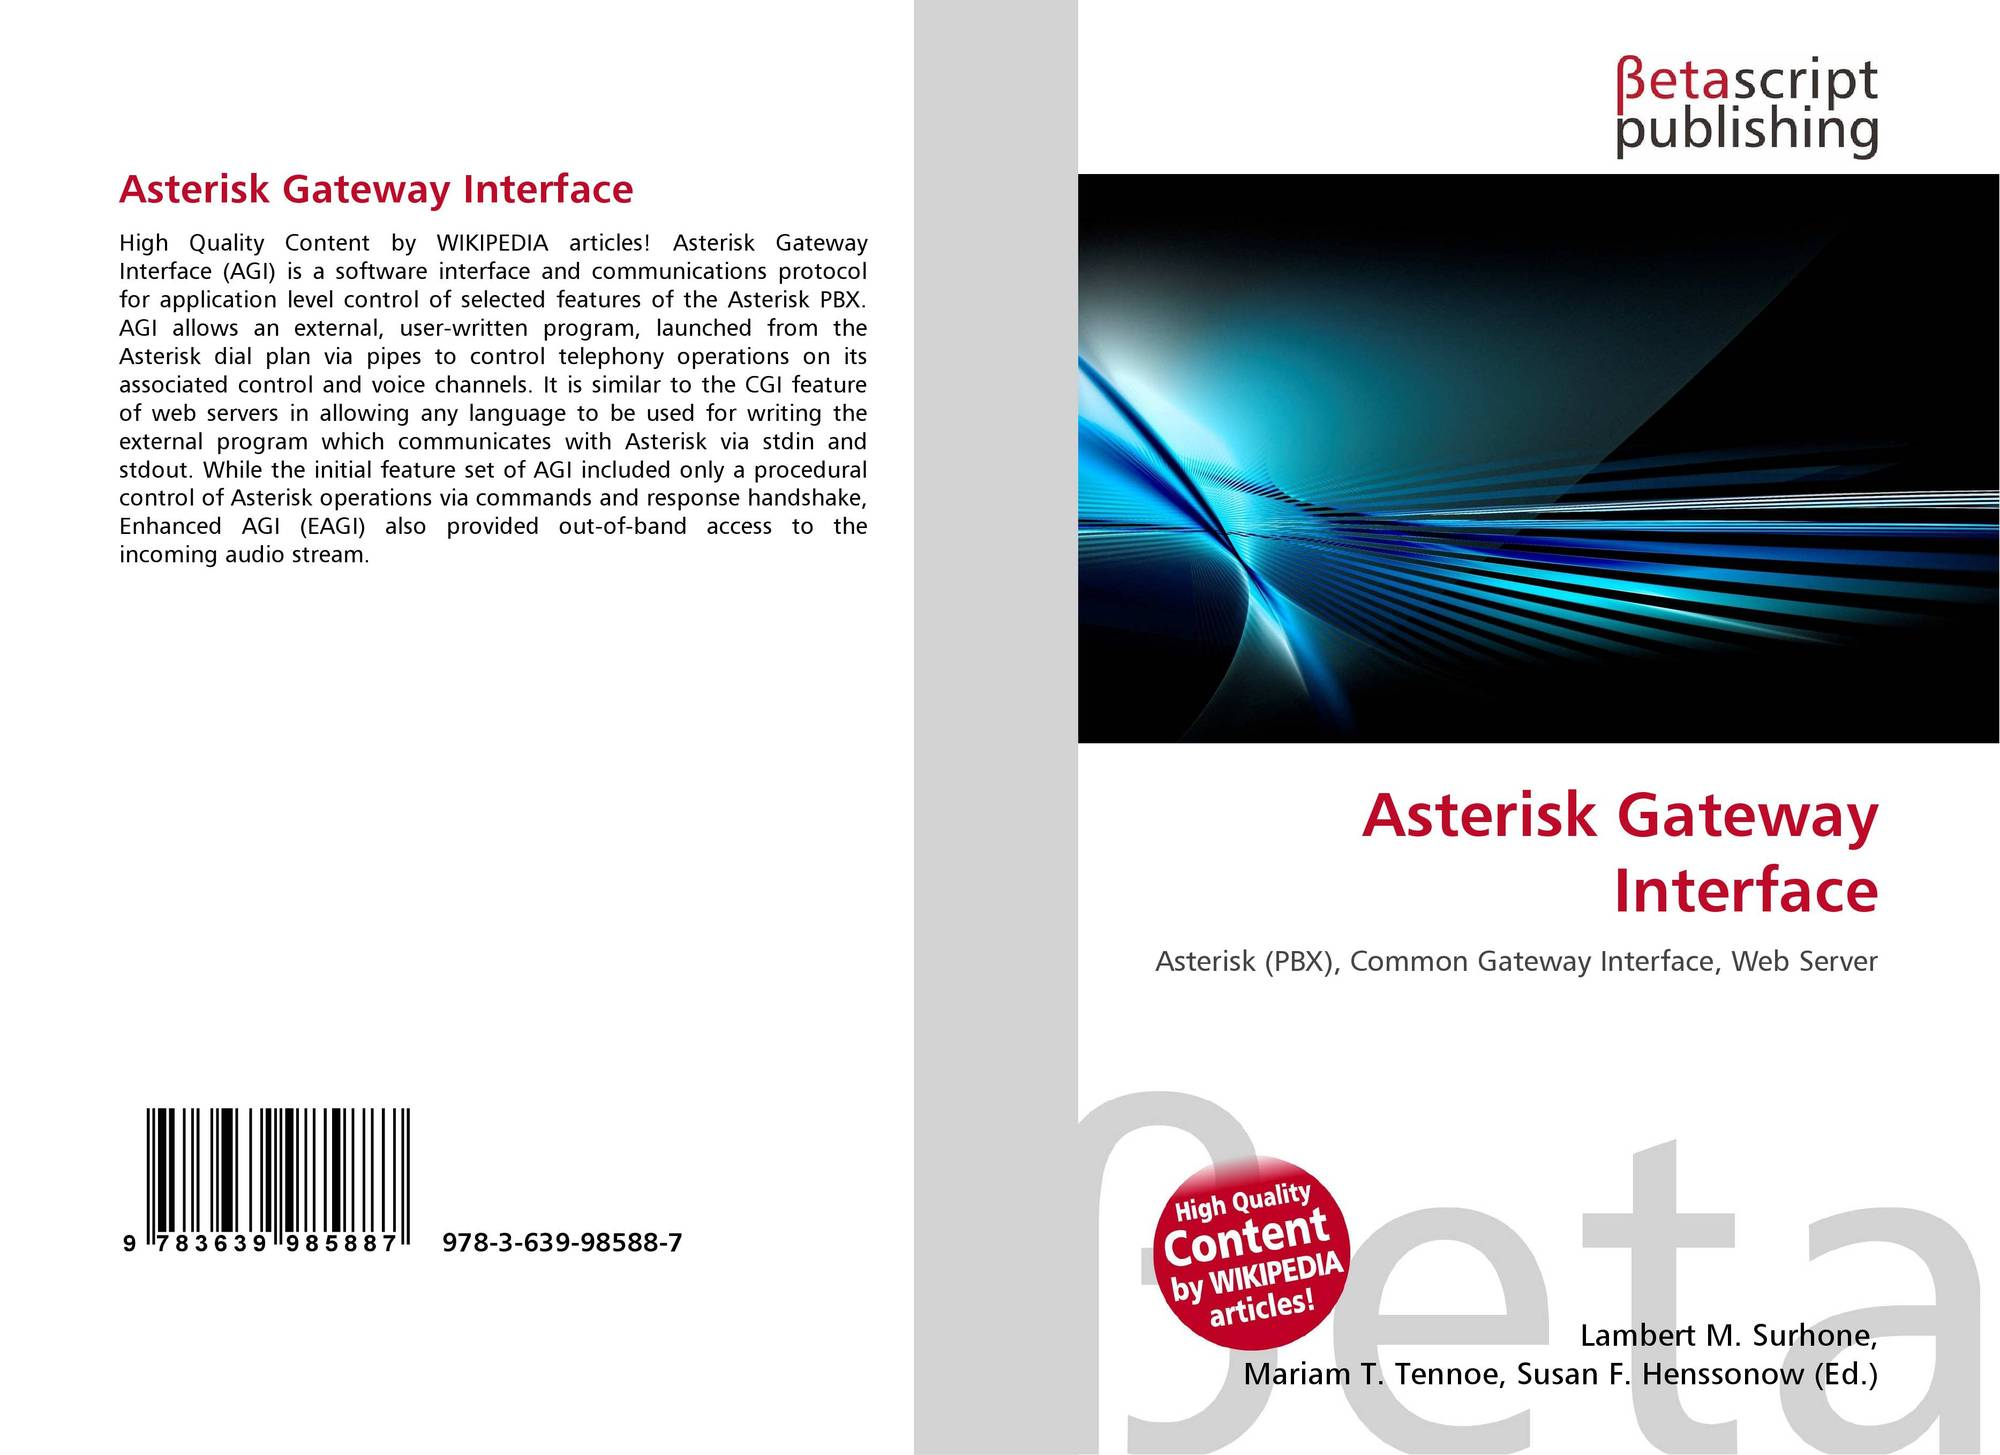 Asterisk Gateway Interface, 978-3-639-98588-7, 3639985885